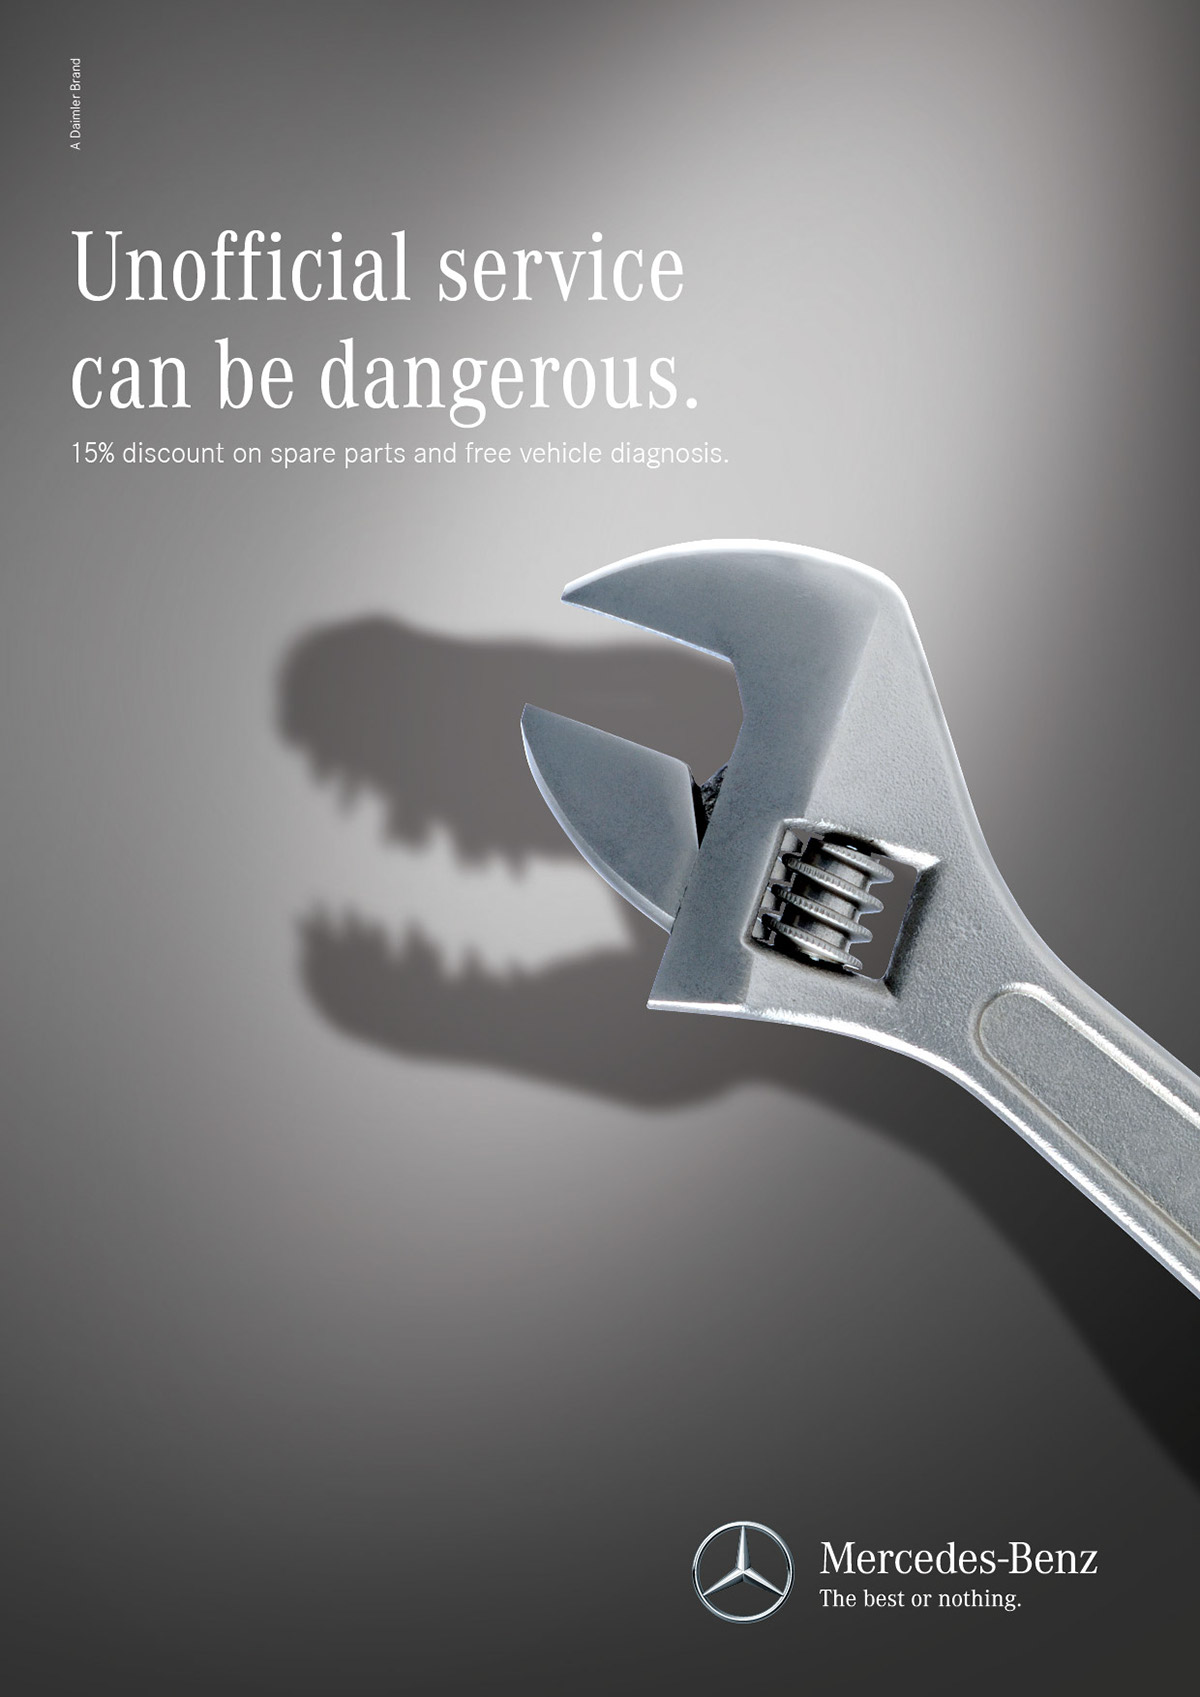 Mercedes benz service on behance for Mercedes benz financial services phone number